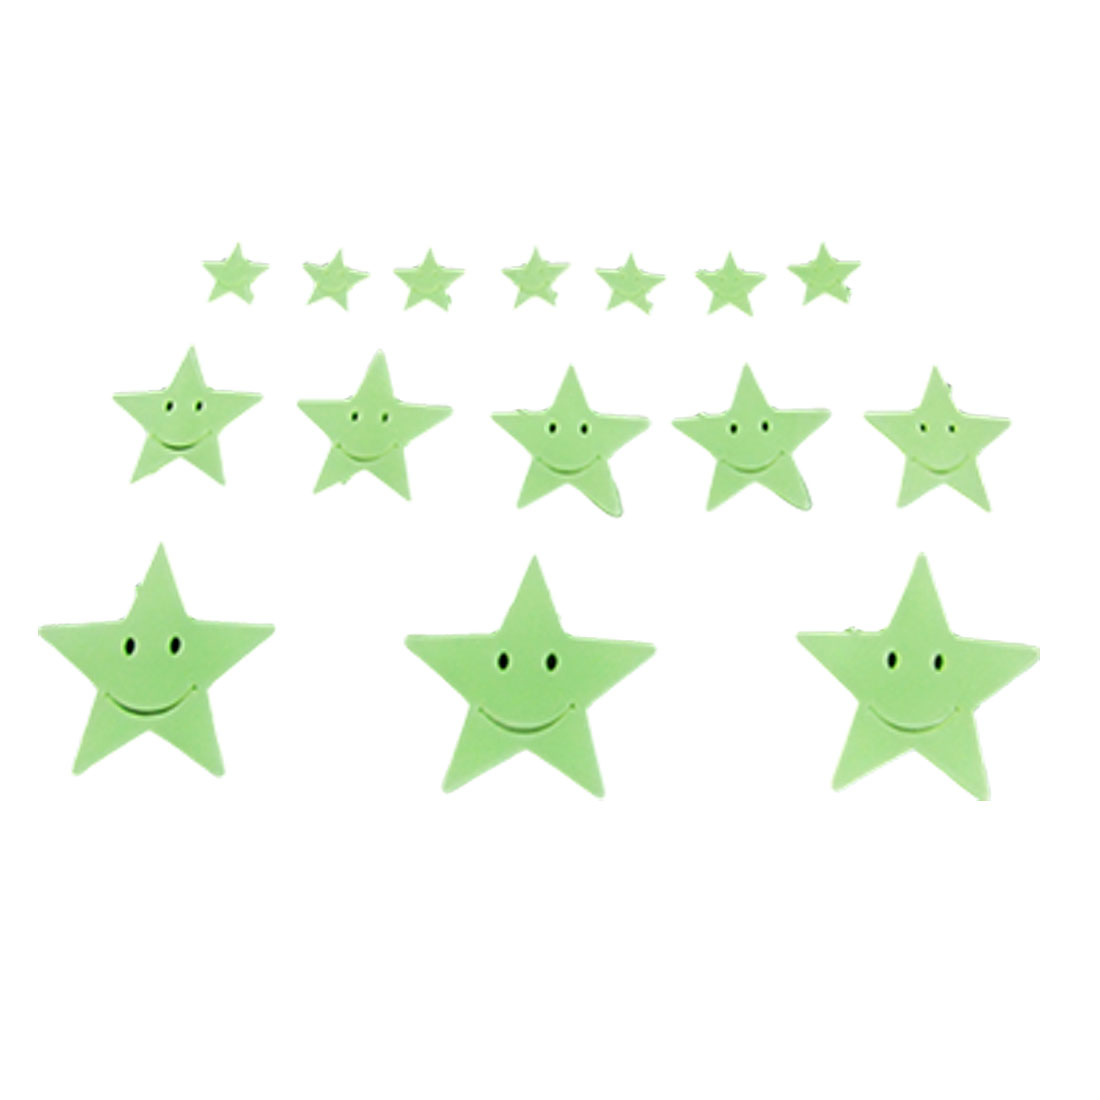 Home Ceiling Wall Decor Luminous Smiling Stars Stickers 15 Pcs